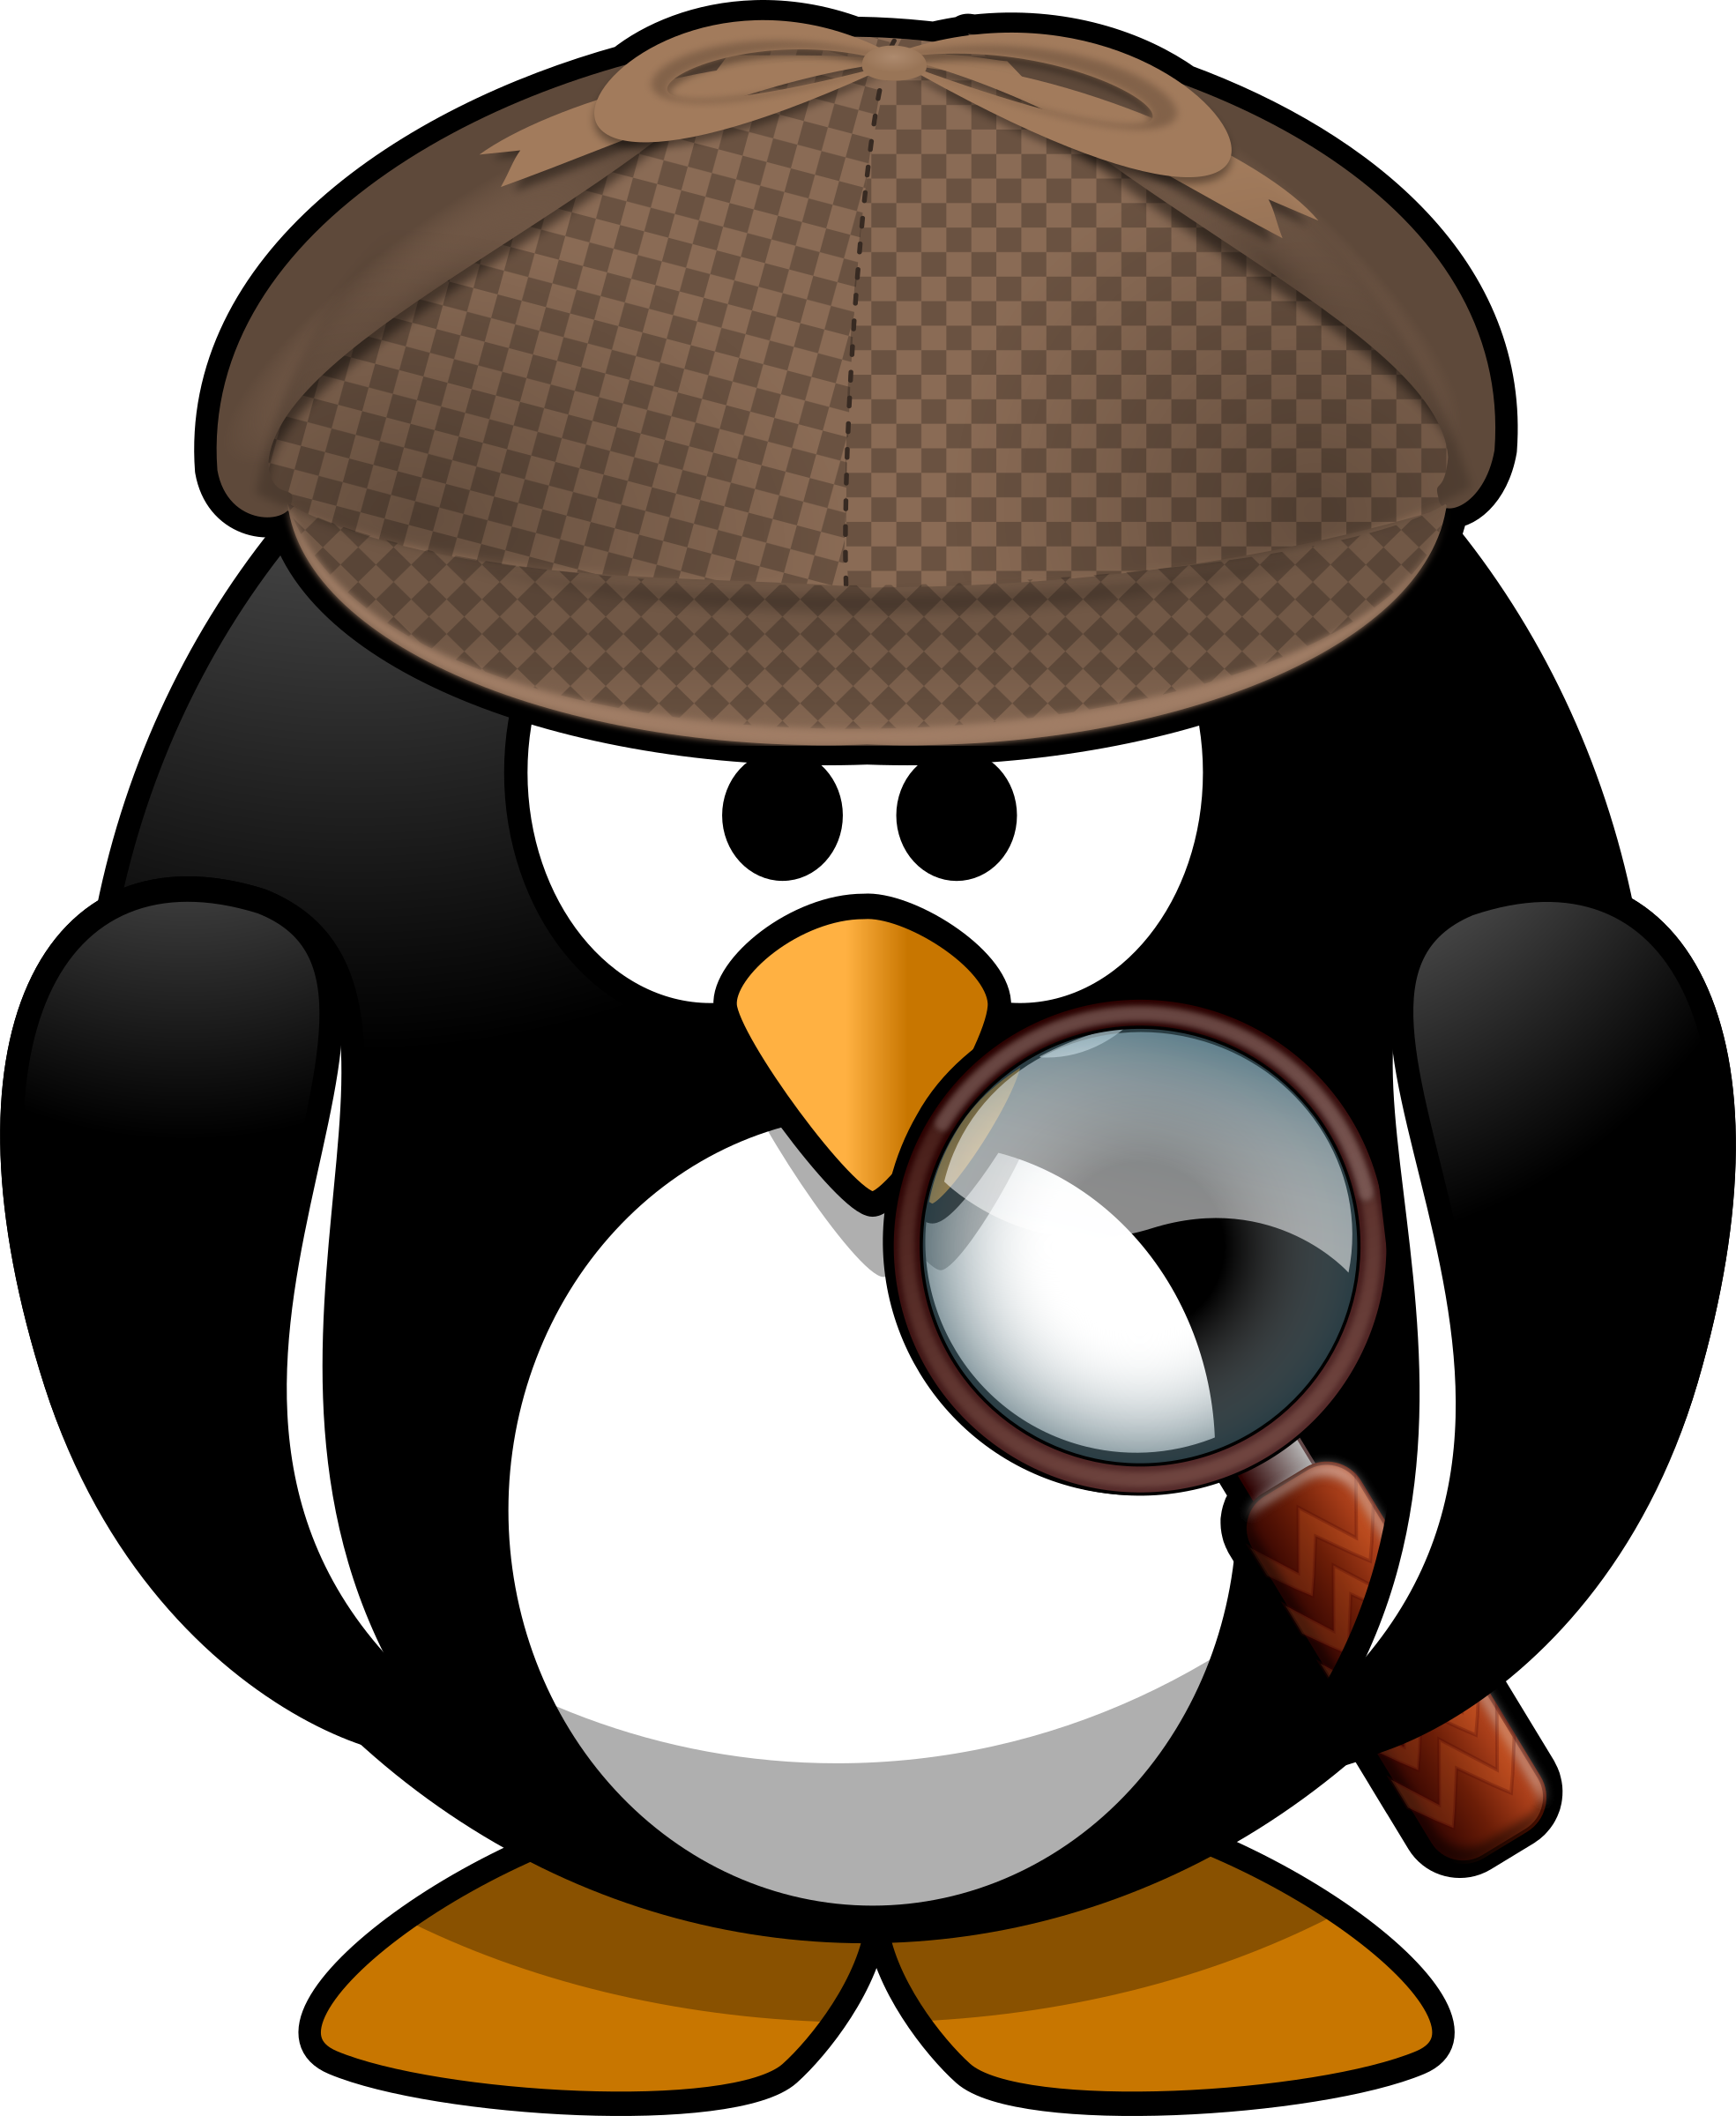 Sleuth penguin by Moini